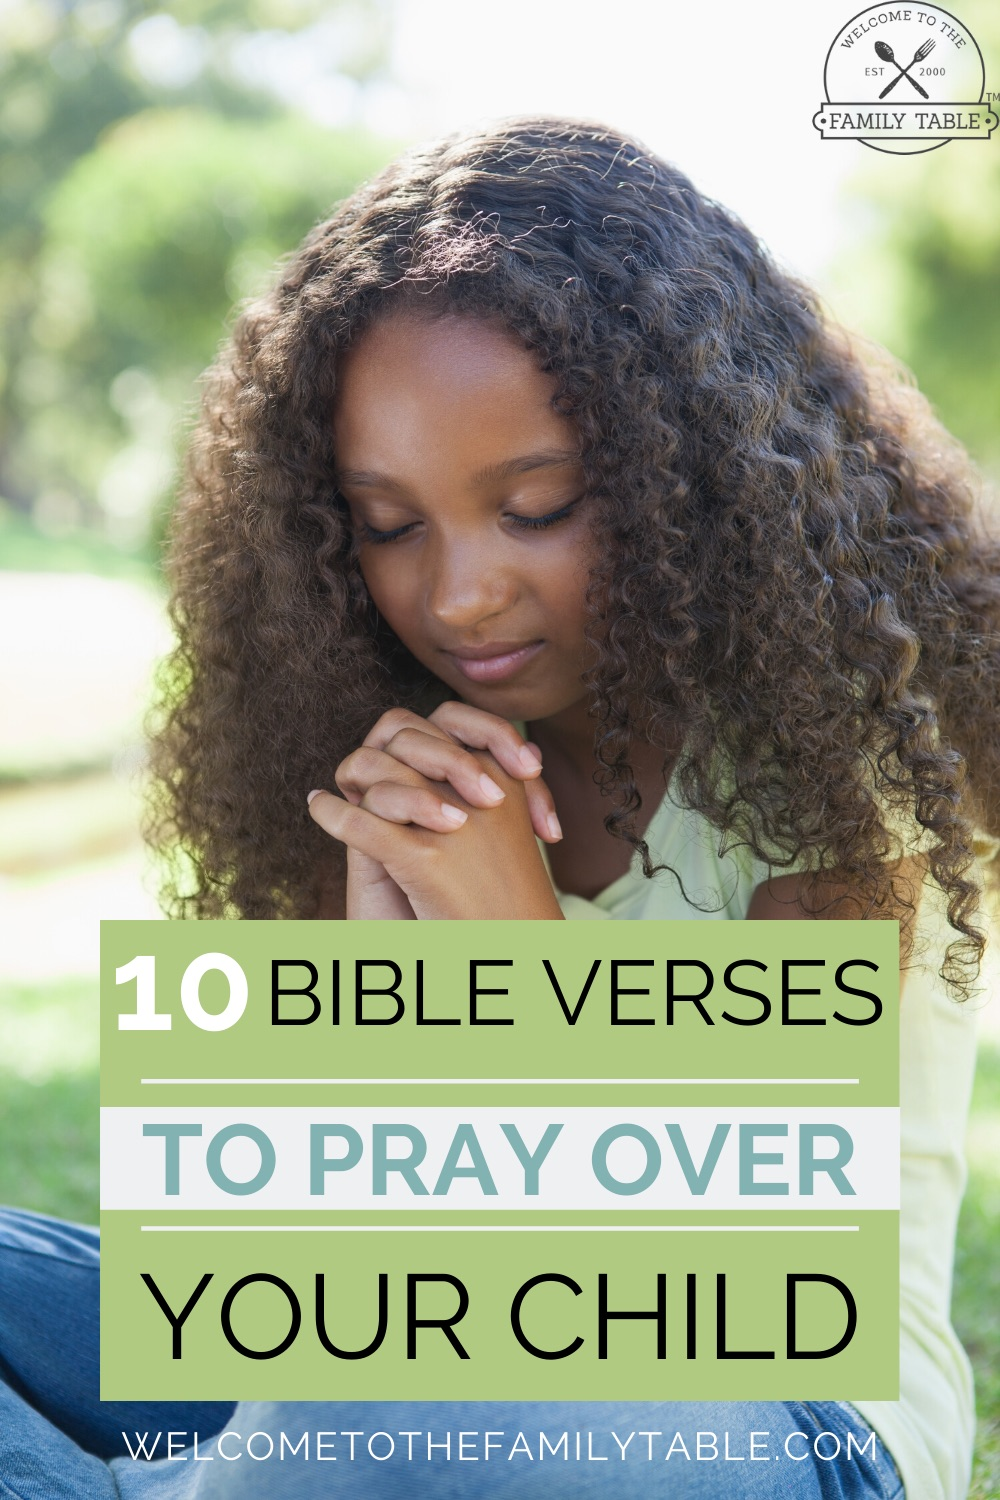 Want to pray some powerful prayers over your child? Come see these 10 Bible verses to pray over your child.